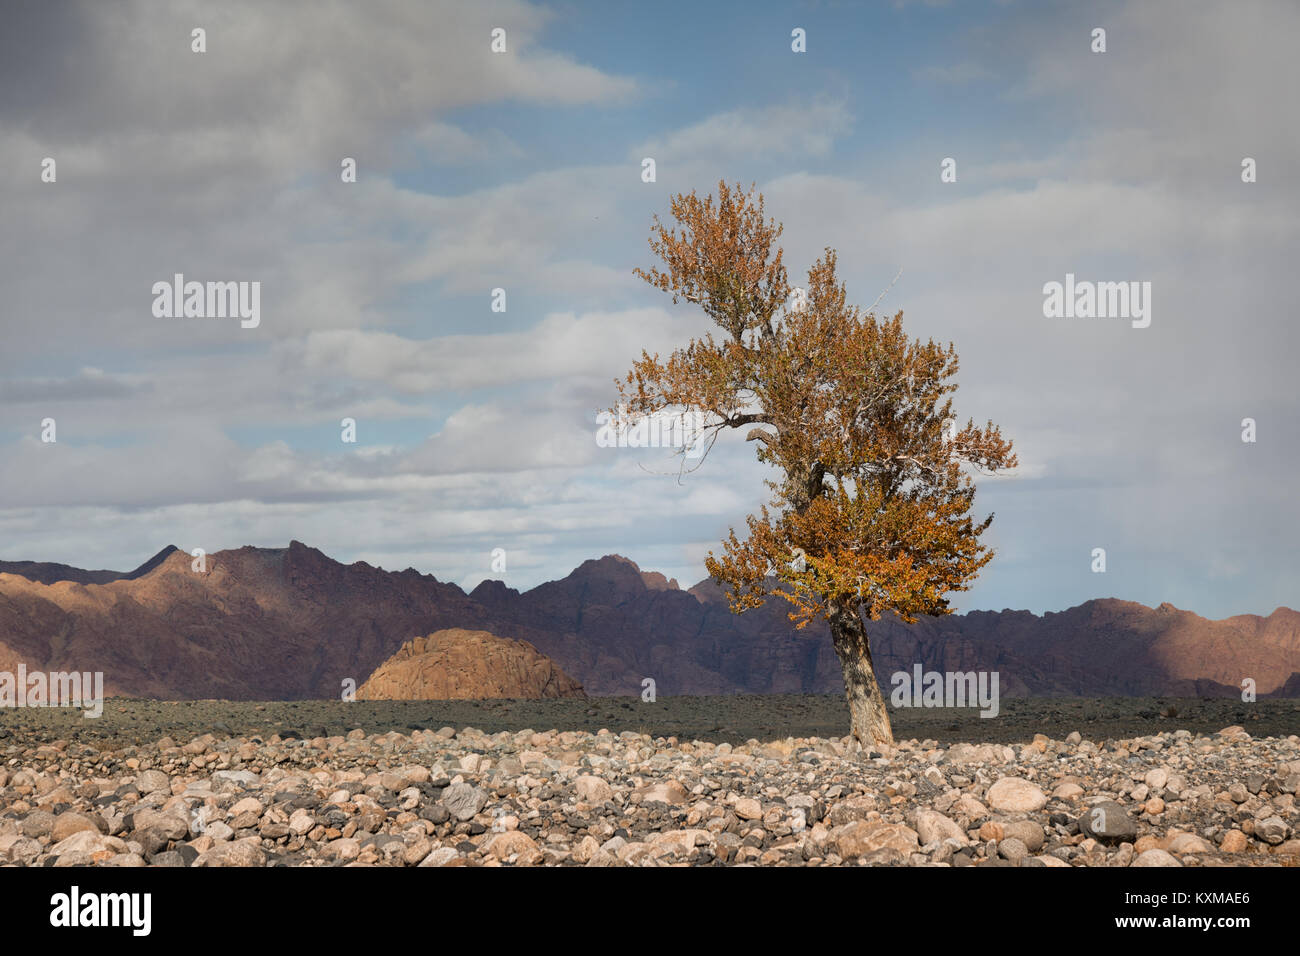 Mongolia yellow leafs tree fall landscape river bank - Stock Image